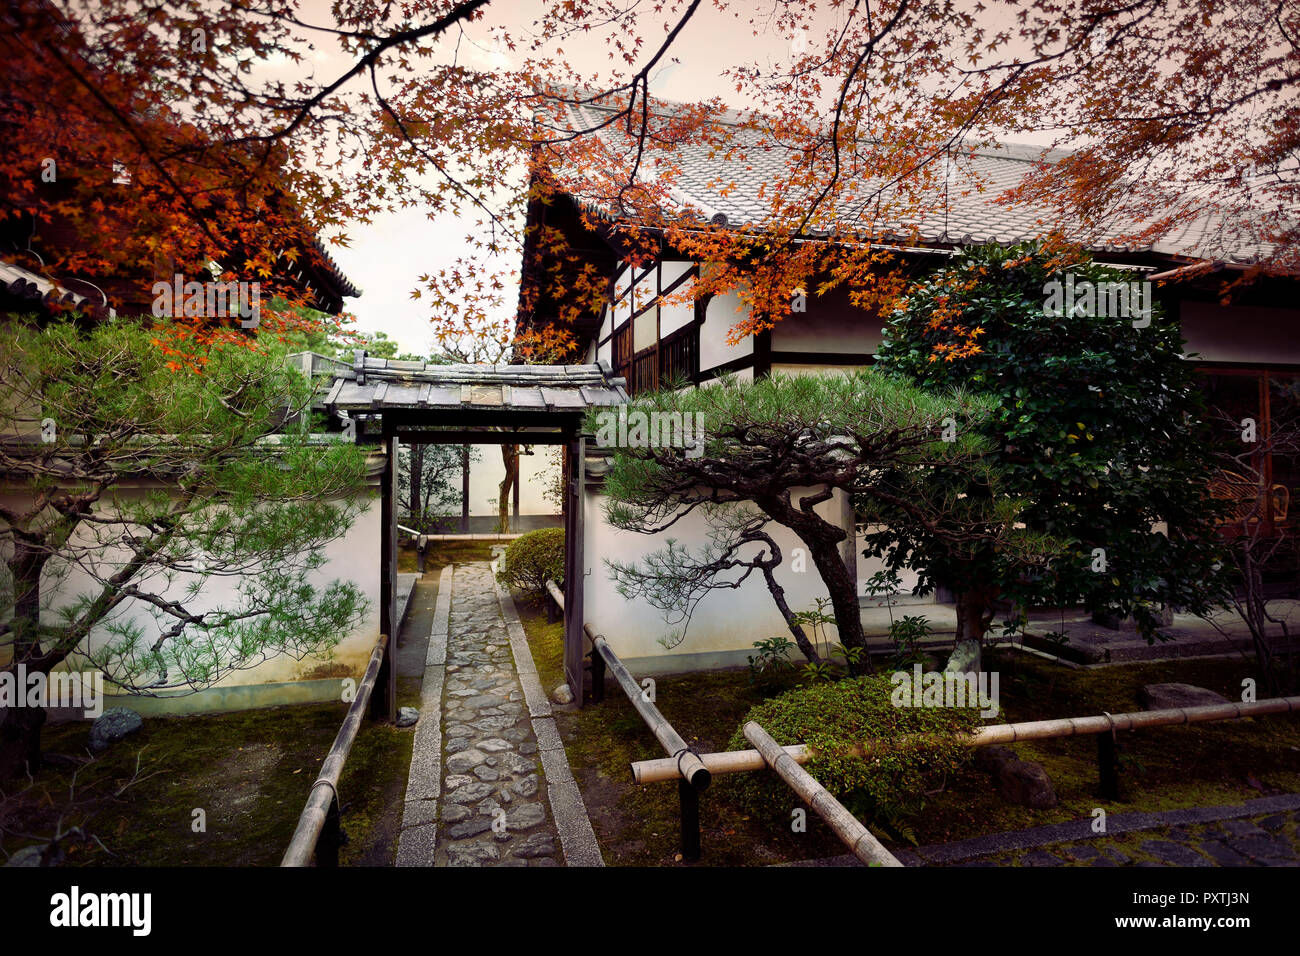 Inner courtyard garden at Daitoku-ji, Zen Buddhist temple in Kyoto, Japan - Stock Image